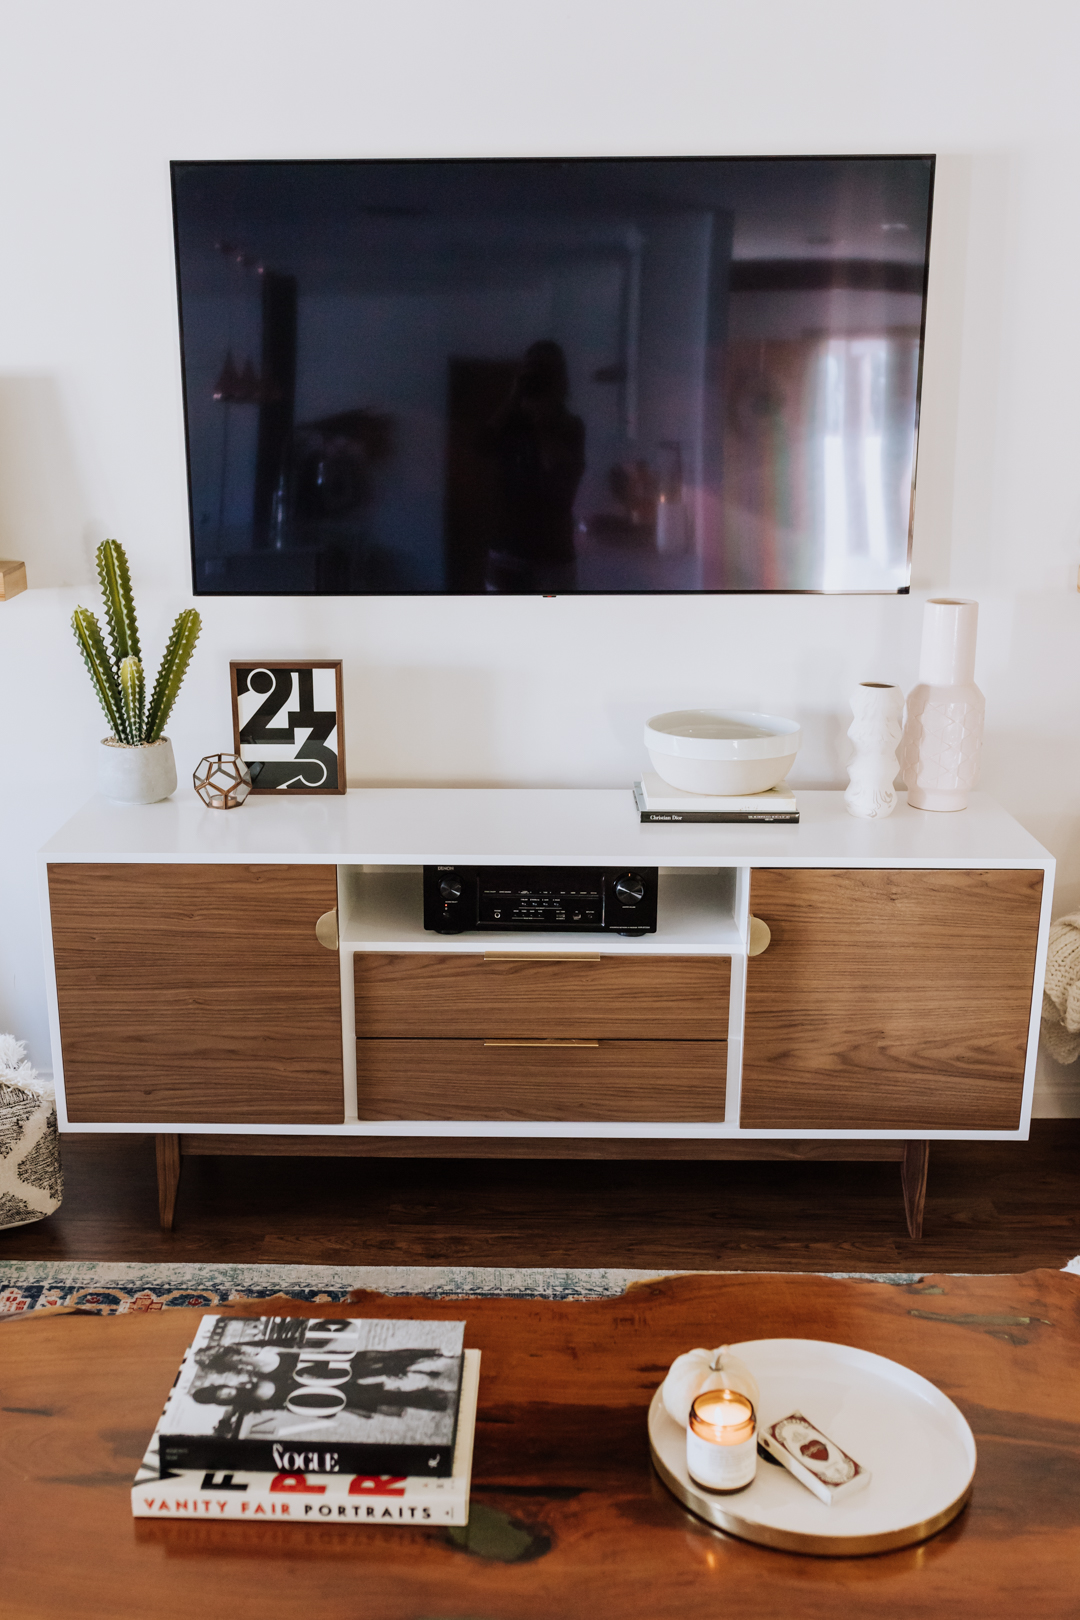 love this new custom media cabinet from draftwood designs in phoenix, az | thelovedesignedlife.com #theldlhome #livingroom #customfurniture #mediacabinet #midcenturymodern